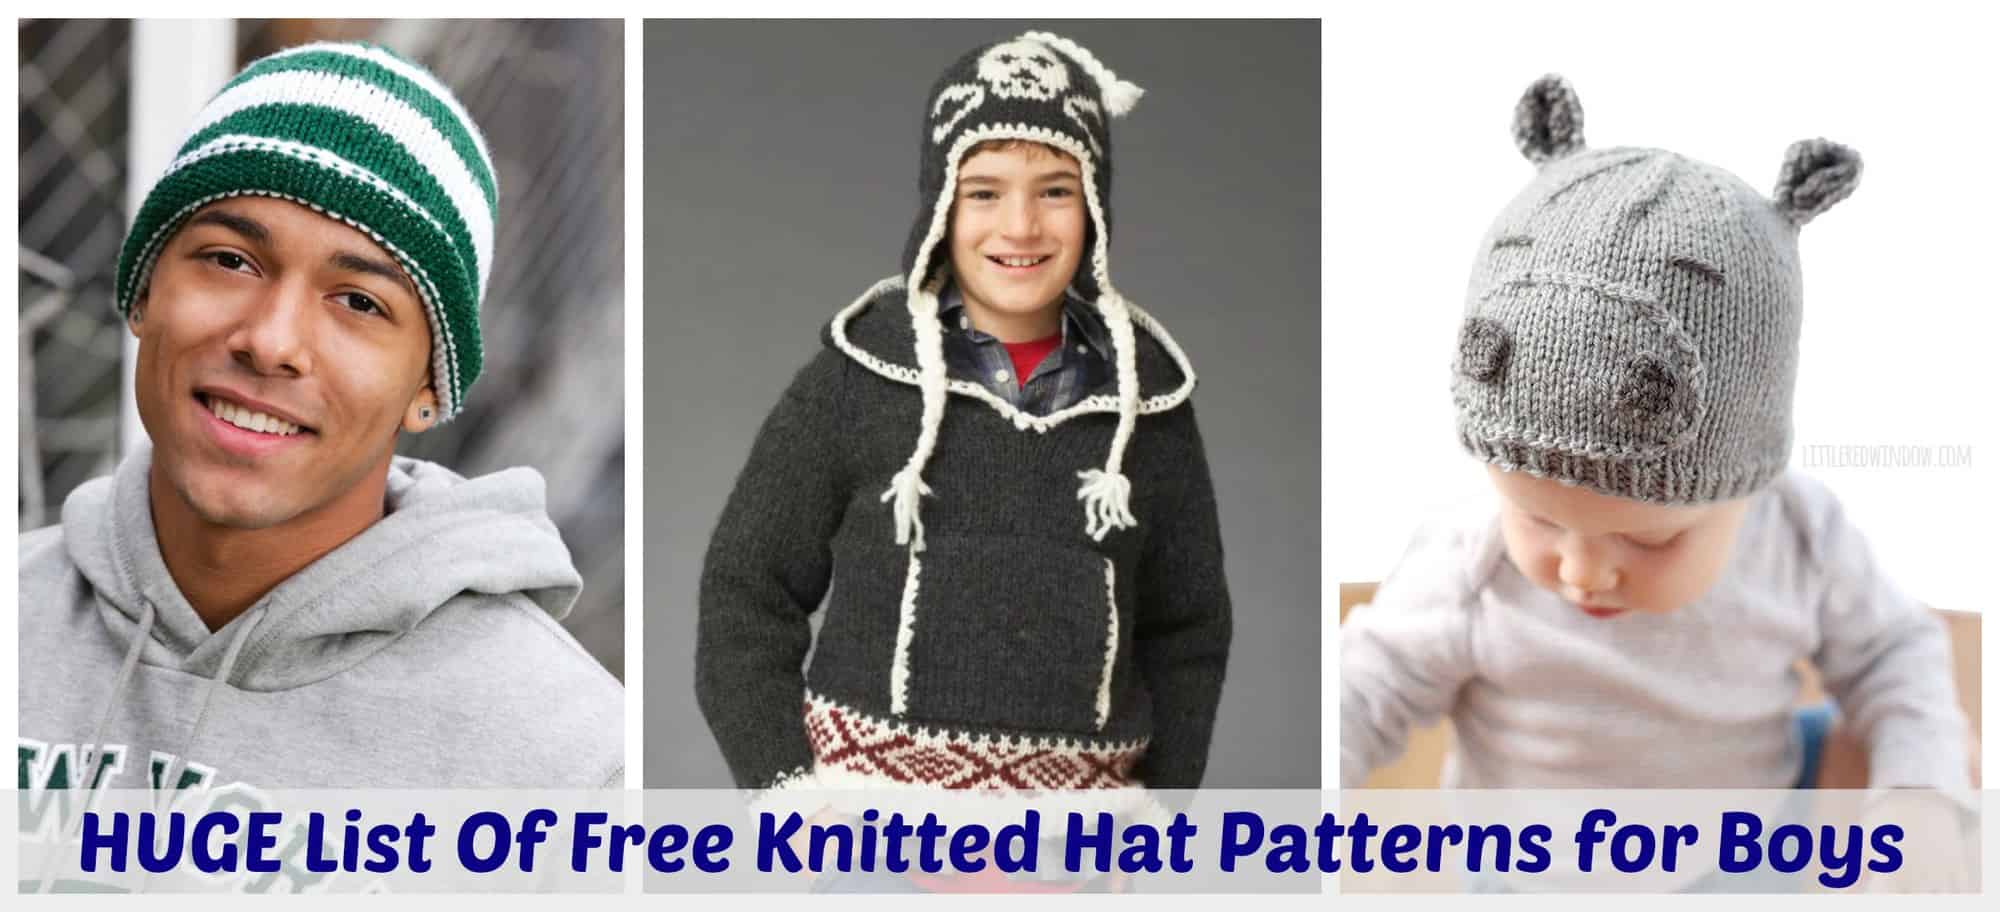 The HUGE List Of Free Knitted Hat Patterns For Boys